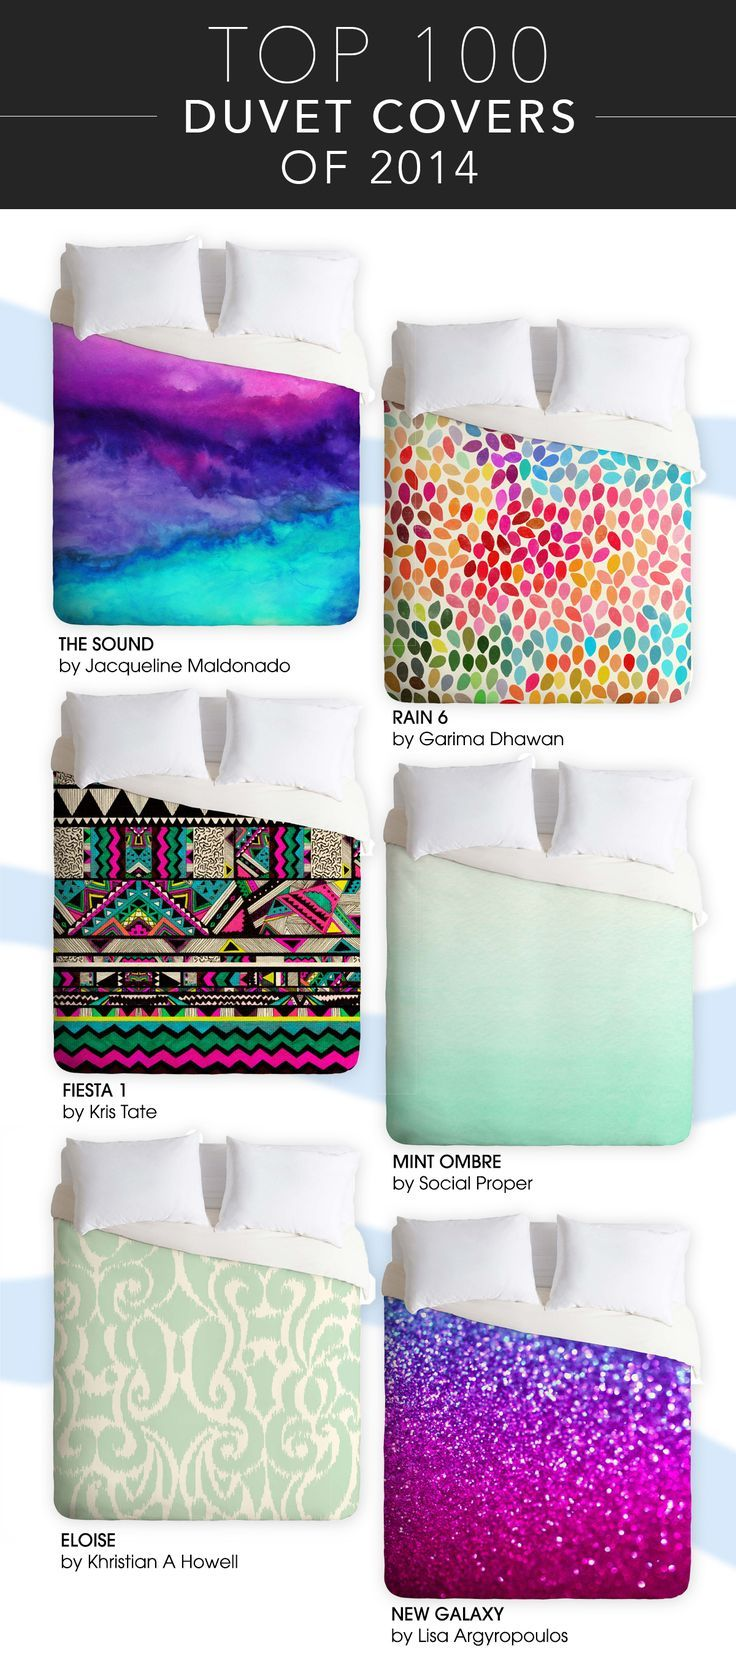 2014 S Most Popular Duvet Covers Are Bright Patterned